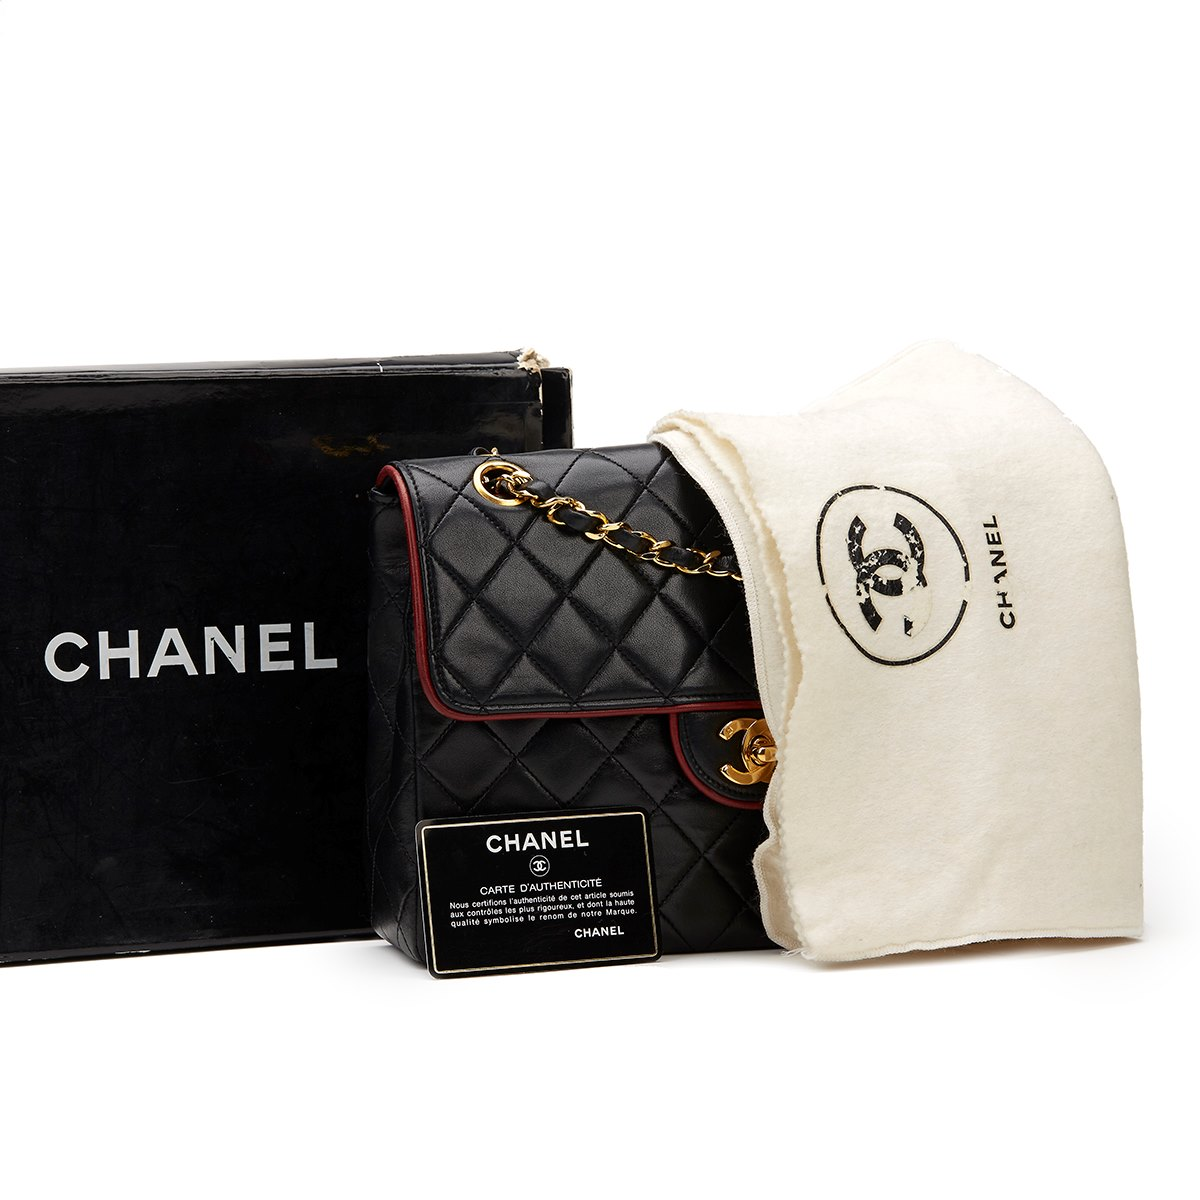 chanel classic single flap bag 1987 hb900 second hand handbags. Black Bedroom Furniture Sets. Home Design Ideas